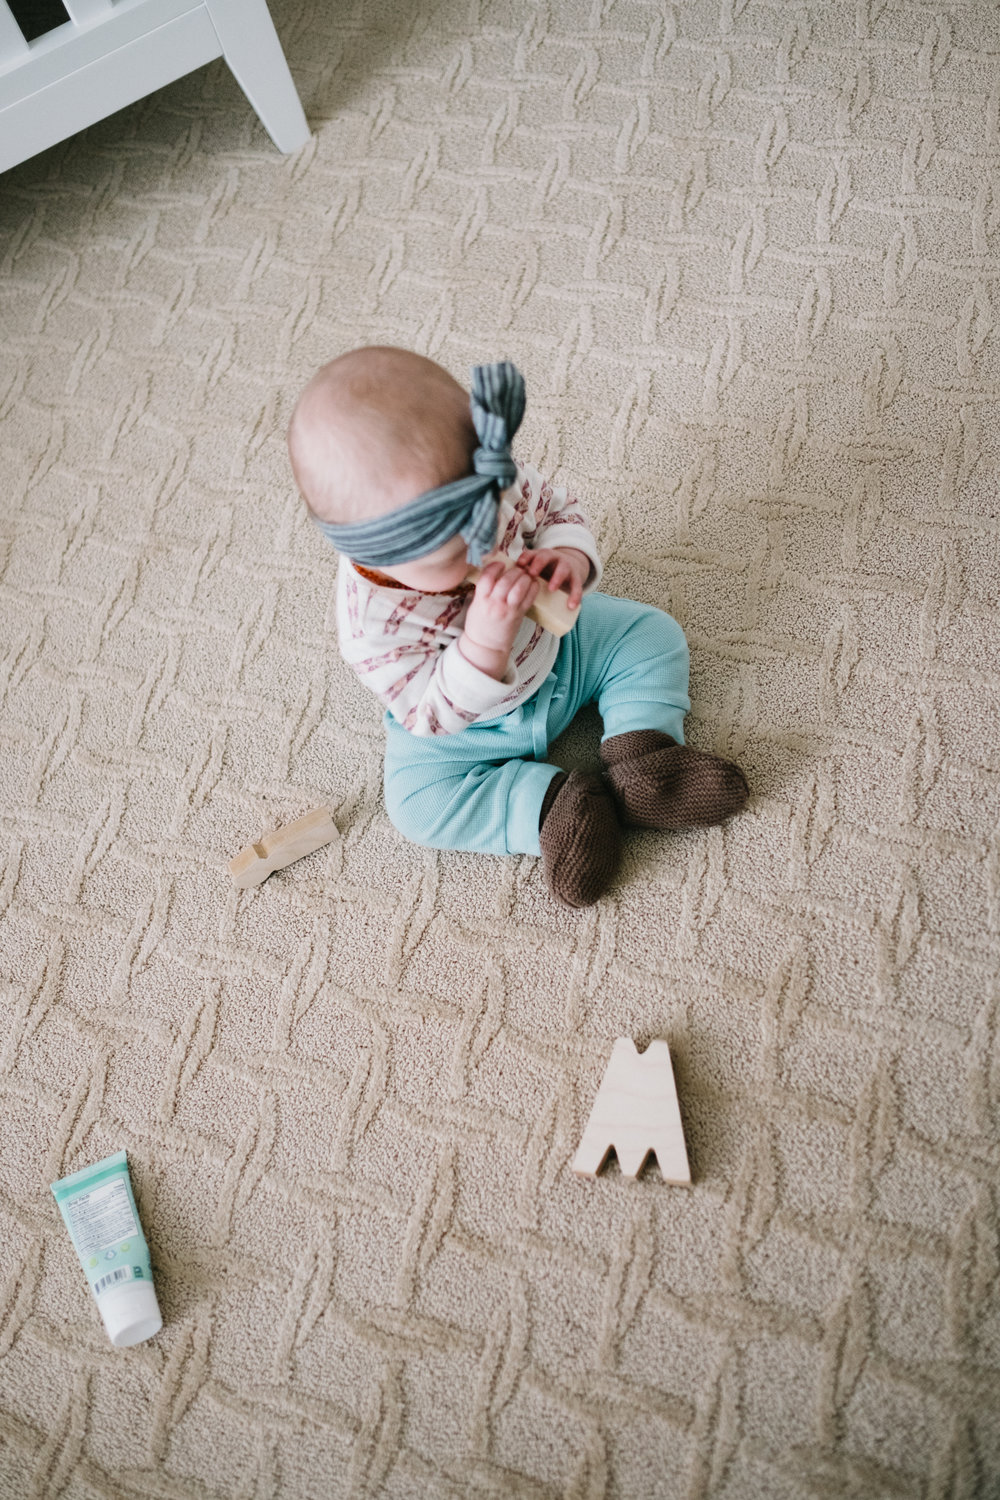 Baby on floor with blocks